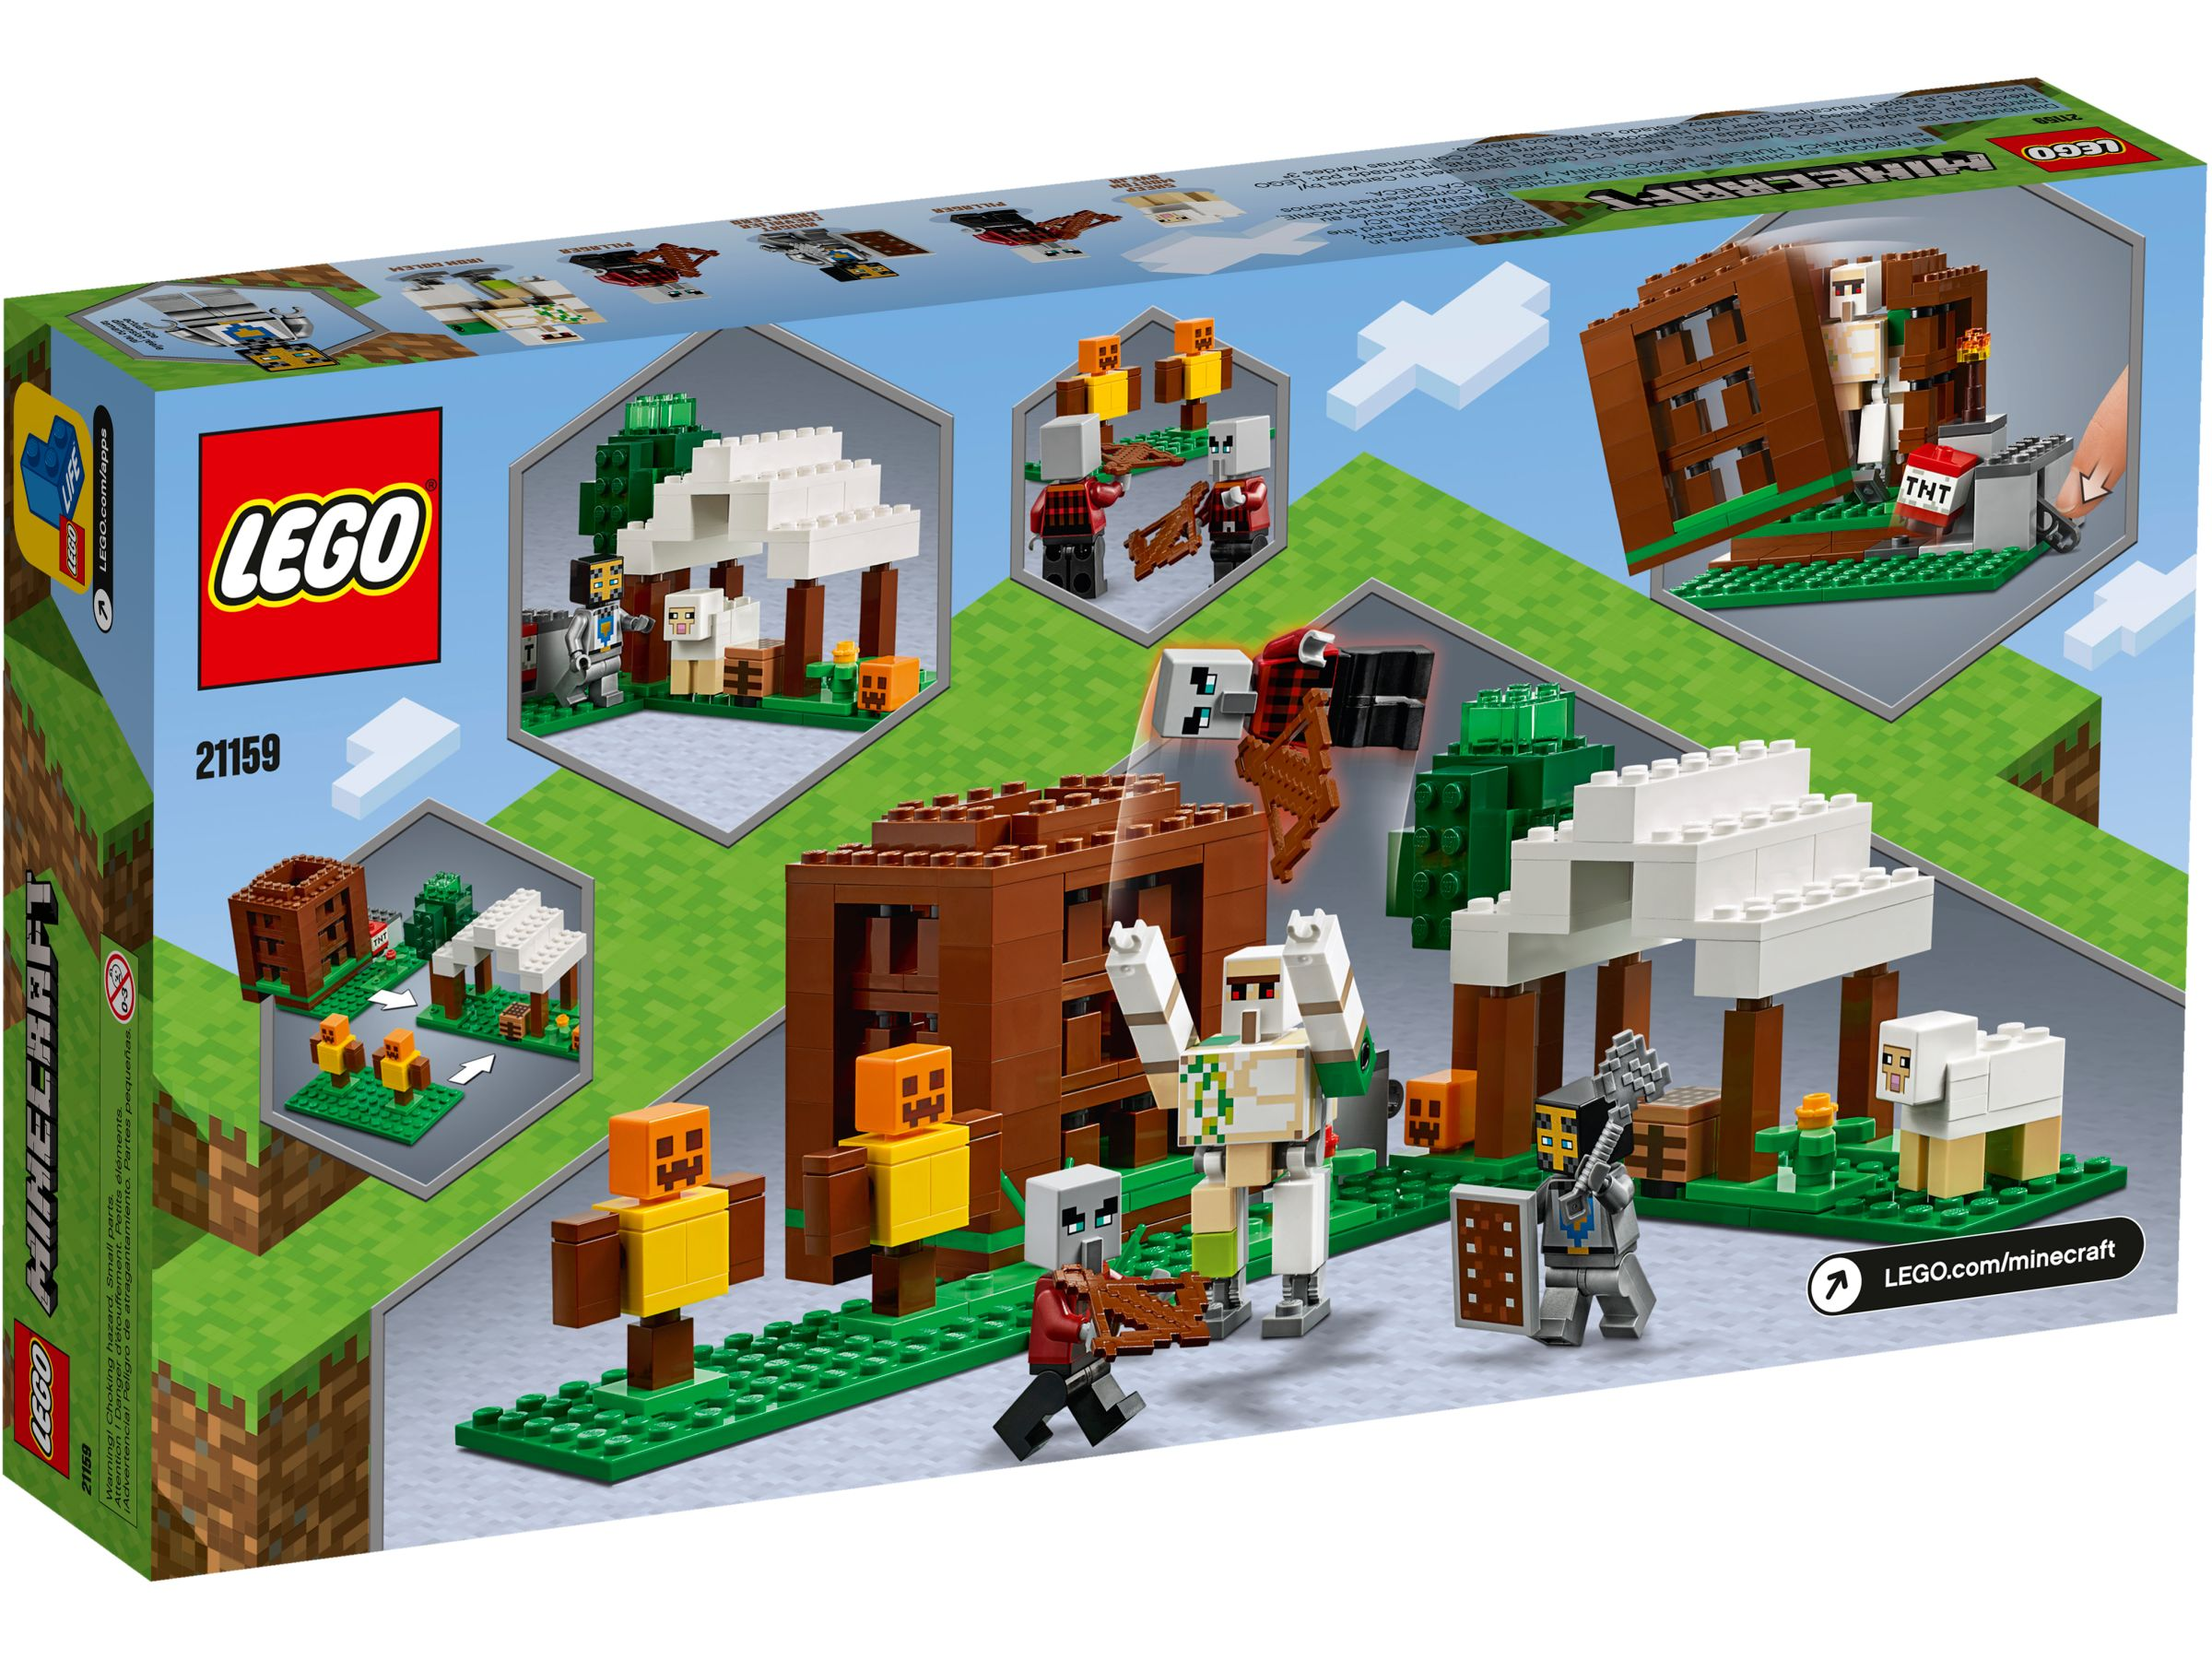 LEGO Minecraft 21159 The Raider Outpost LEGO_21159_alt4.jpg